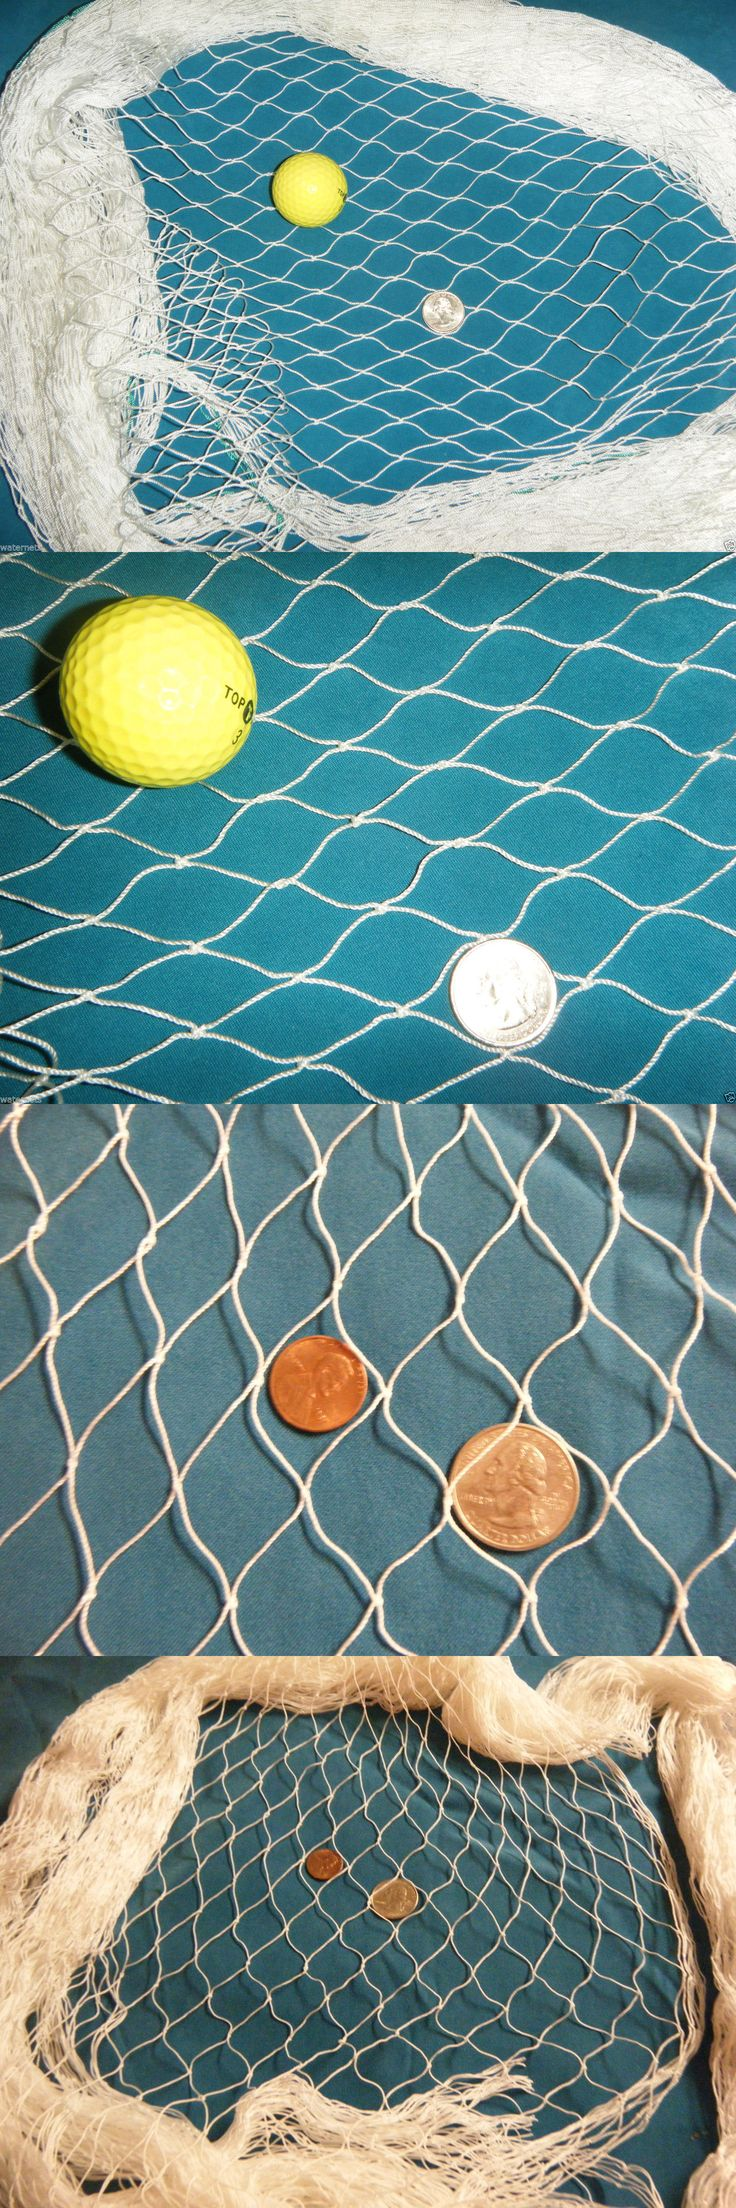 Goals and Nets 165936: 75 X 12 Foot Fish Net Hockey Golf Sports Pet Barrier Koi Pond Fishing Net -> BUY IT NOW ONLY: $109 on eBay!